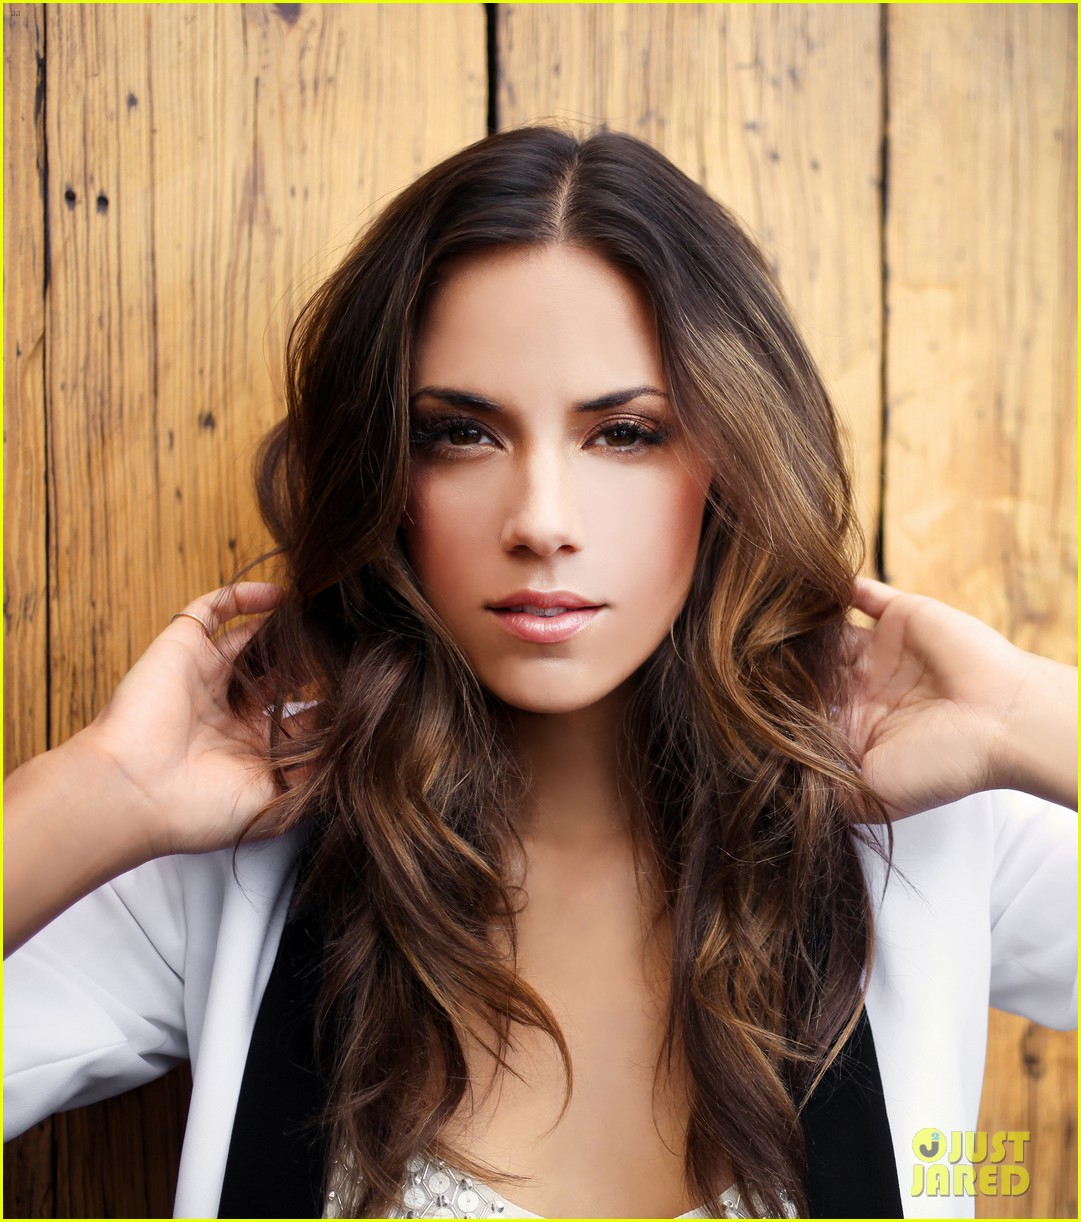 Jana Kramer - JustJared Jana-kramer-photo-shoot-just-jared-exclusive-06